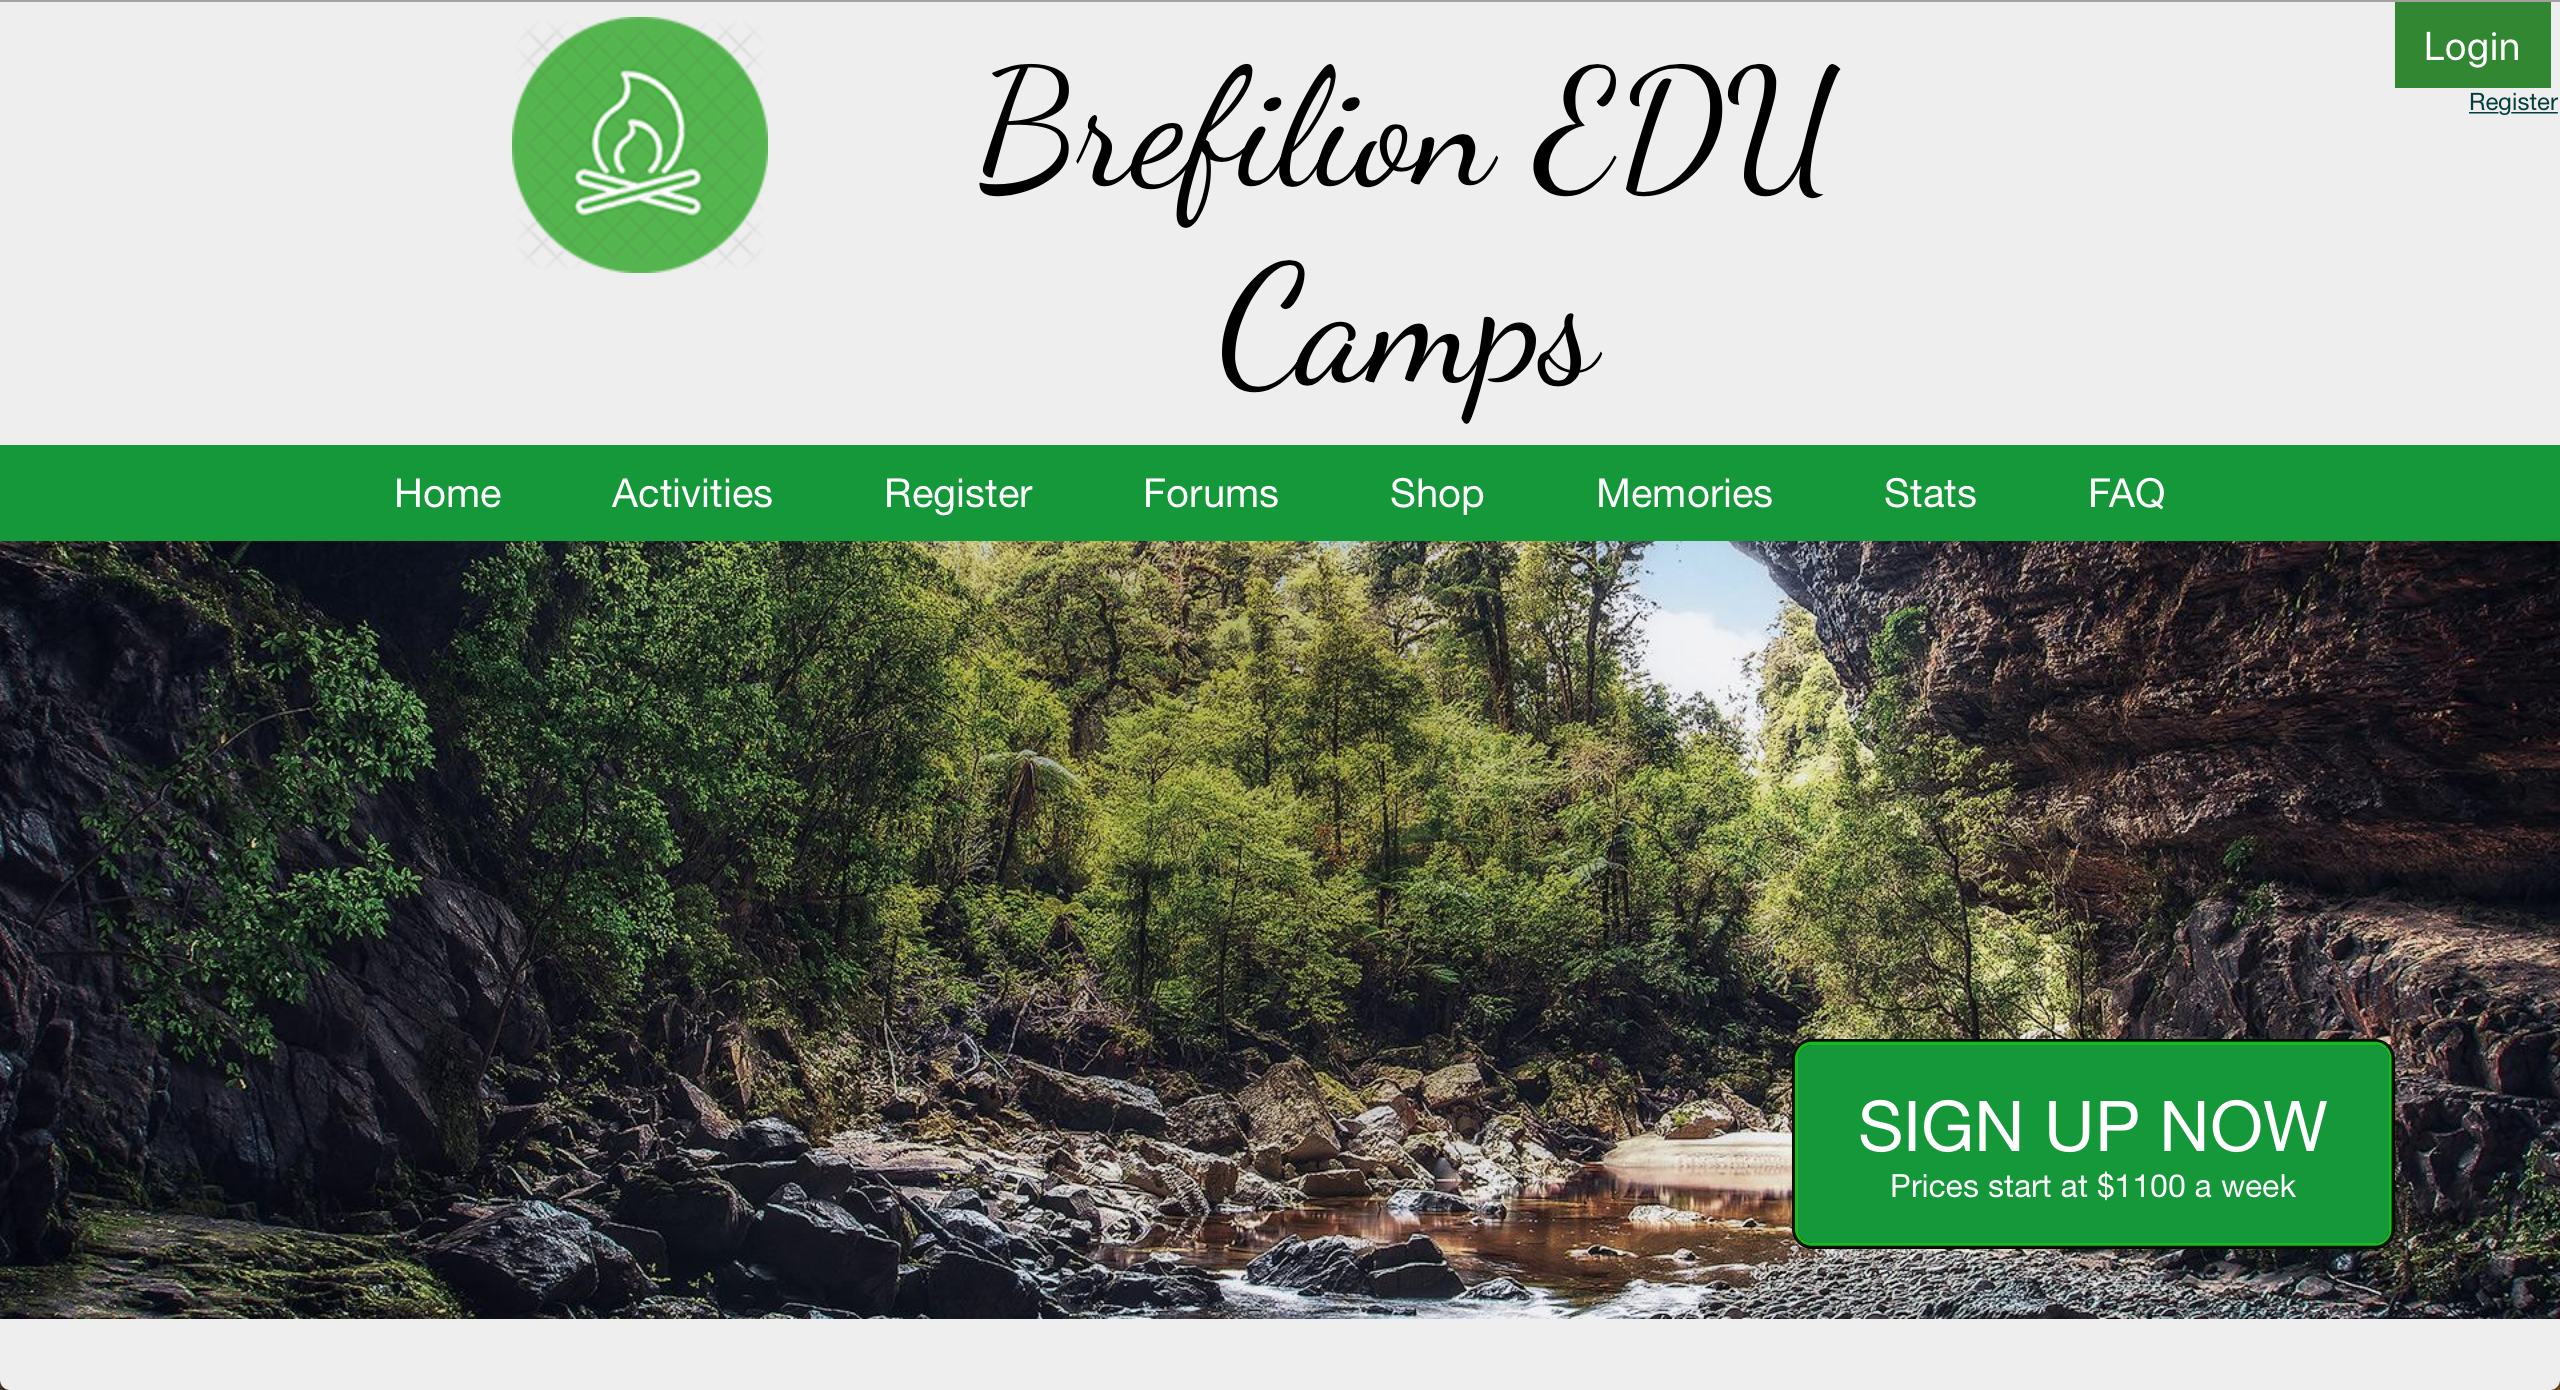 Brefilion EDU Camps Home Page